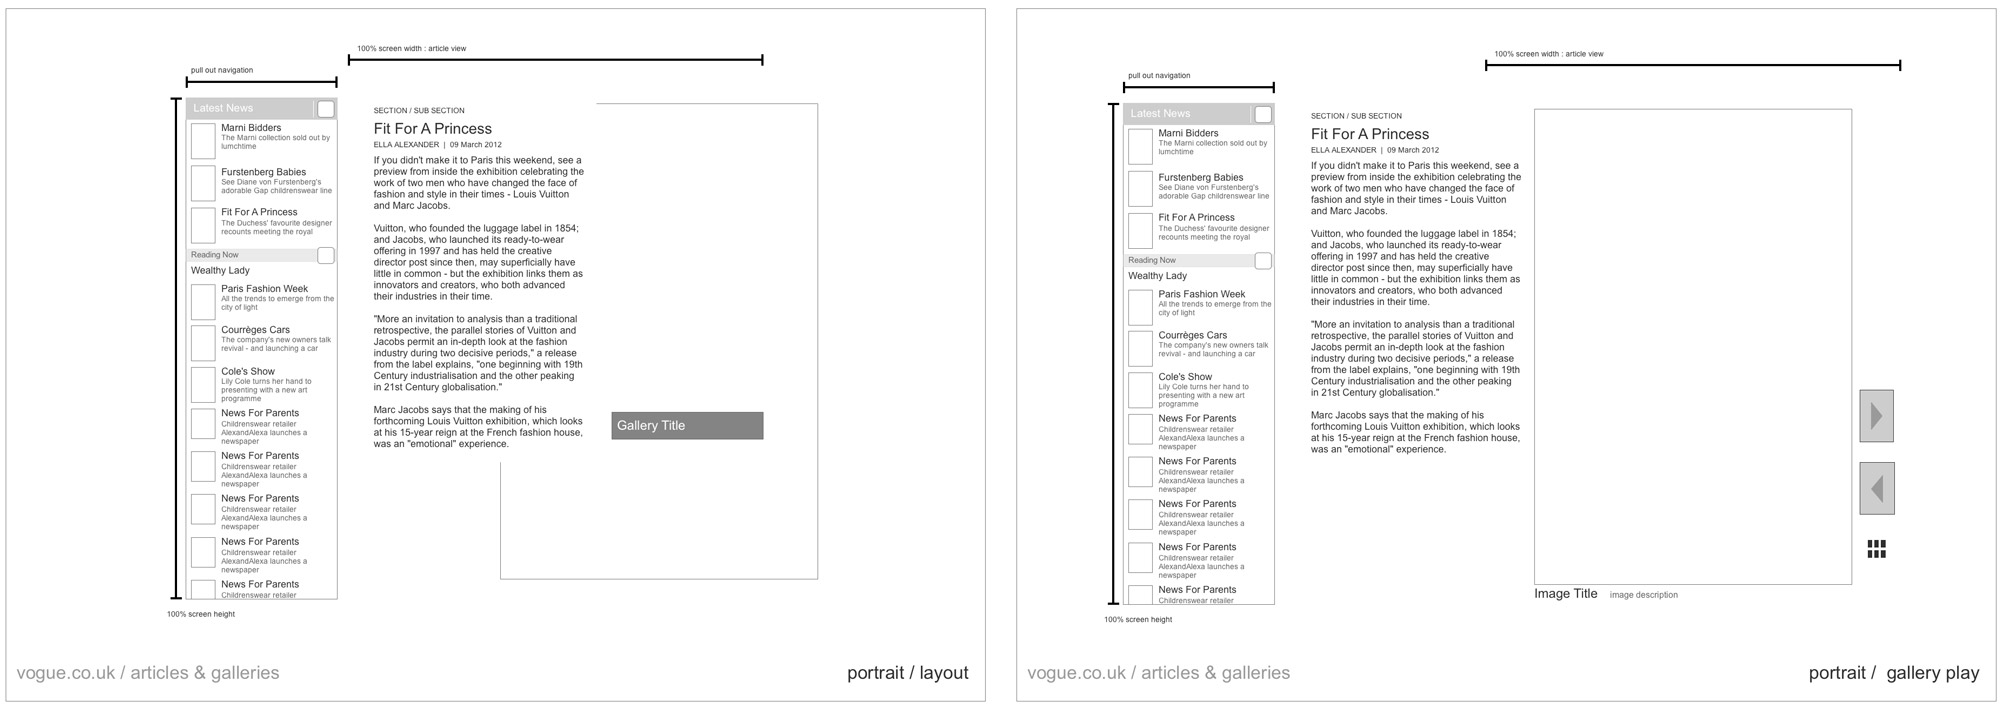 Early wireframes of Article and Gallery and transition between them